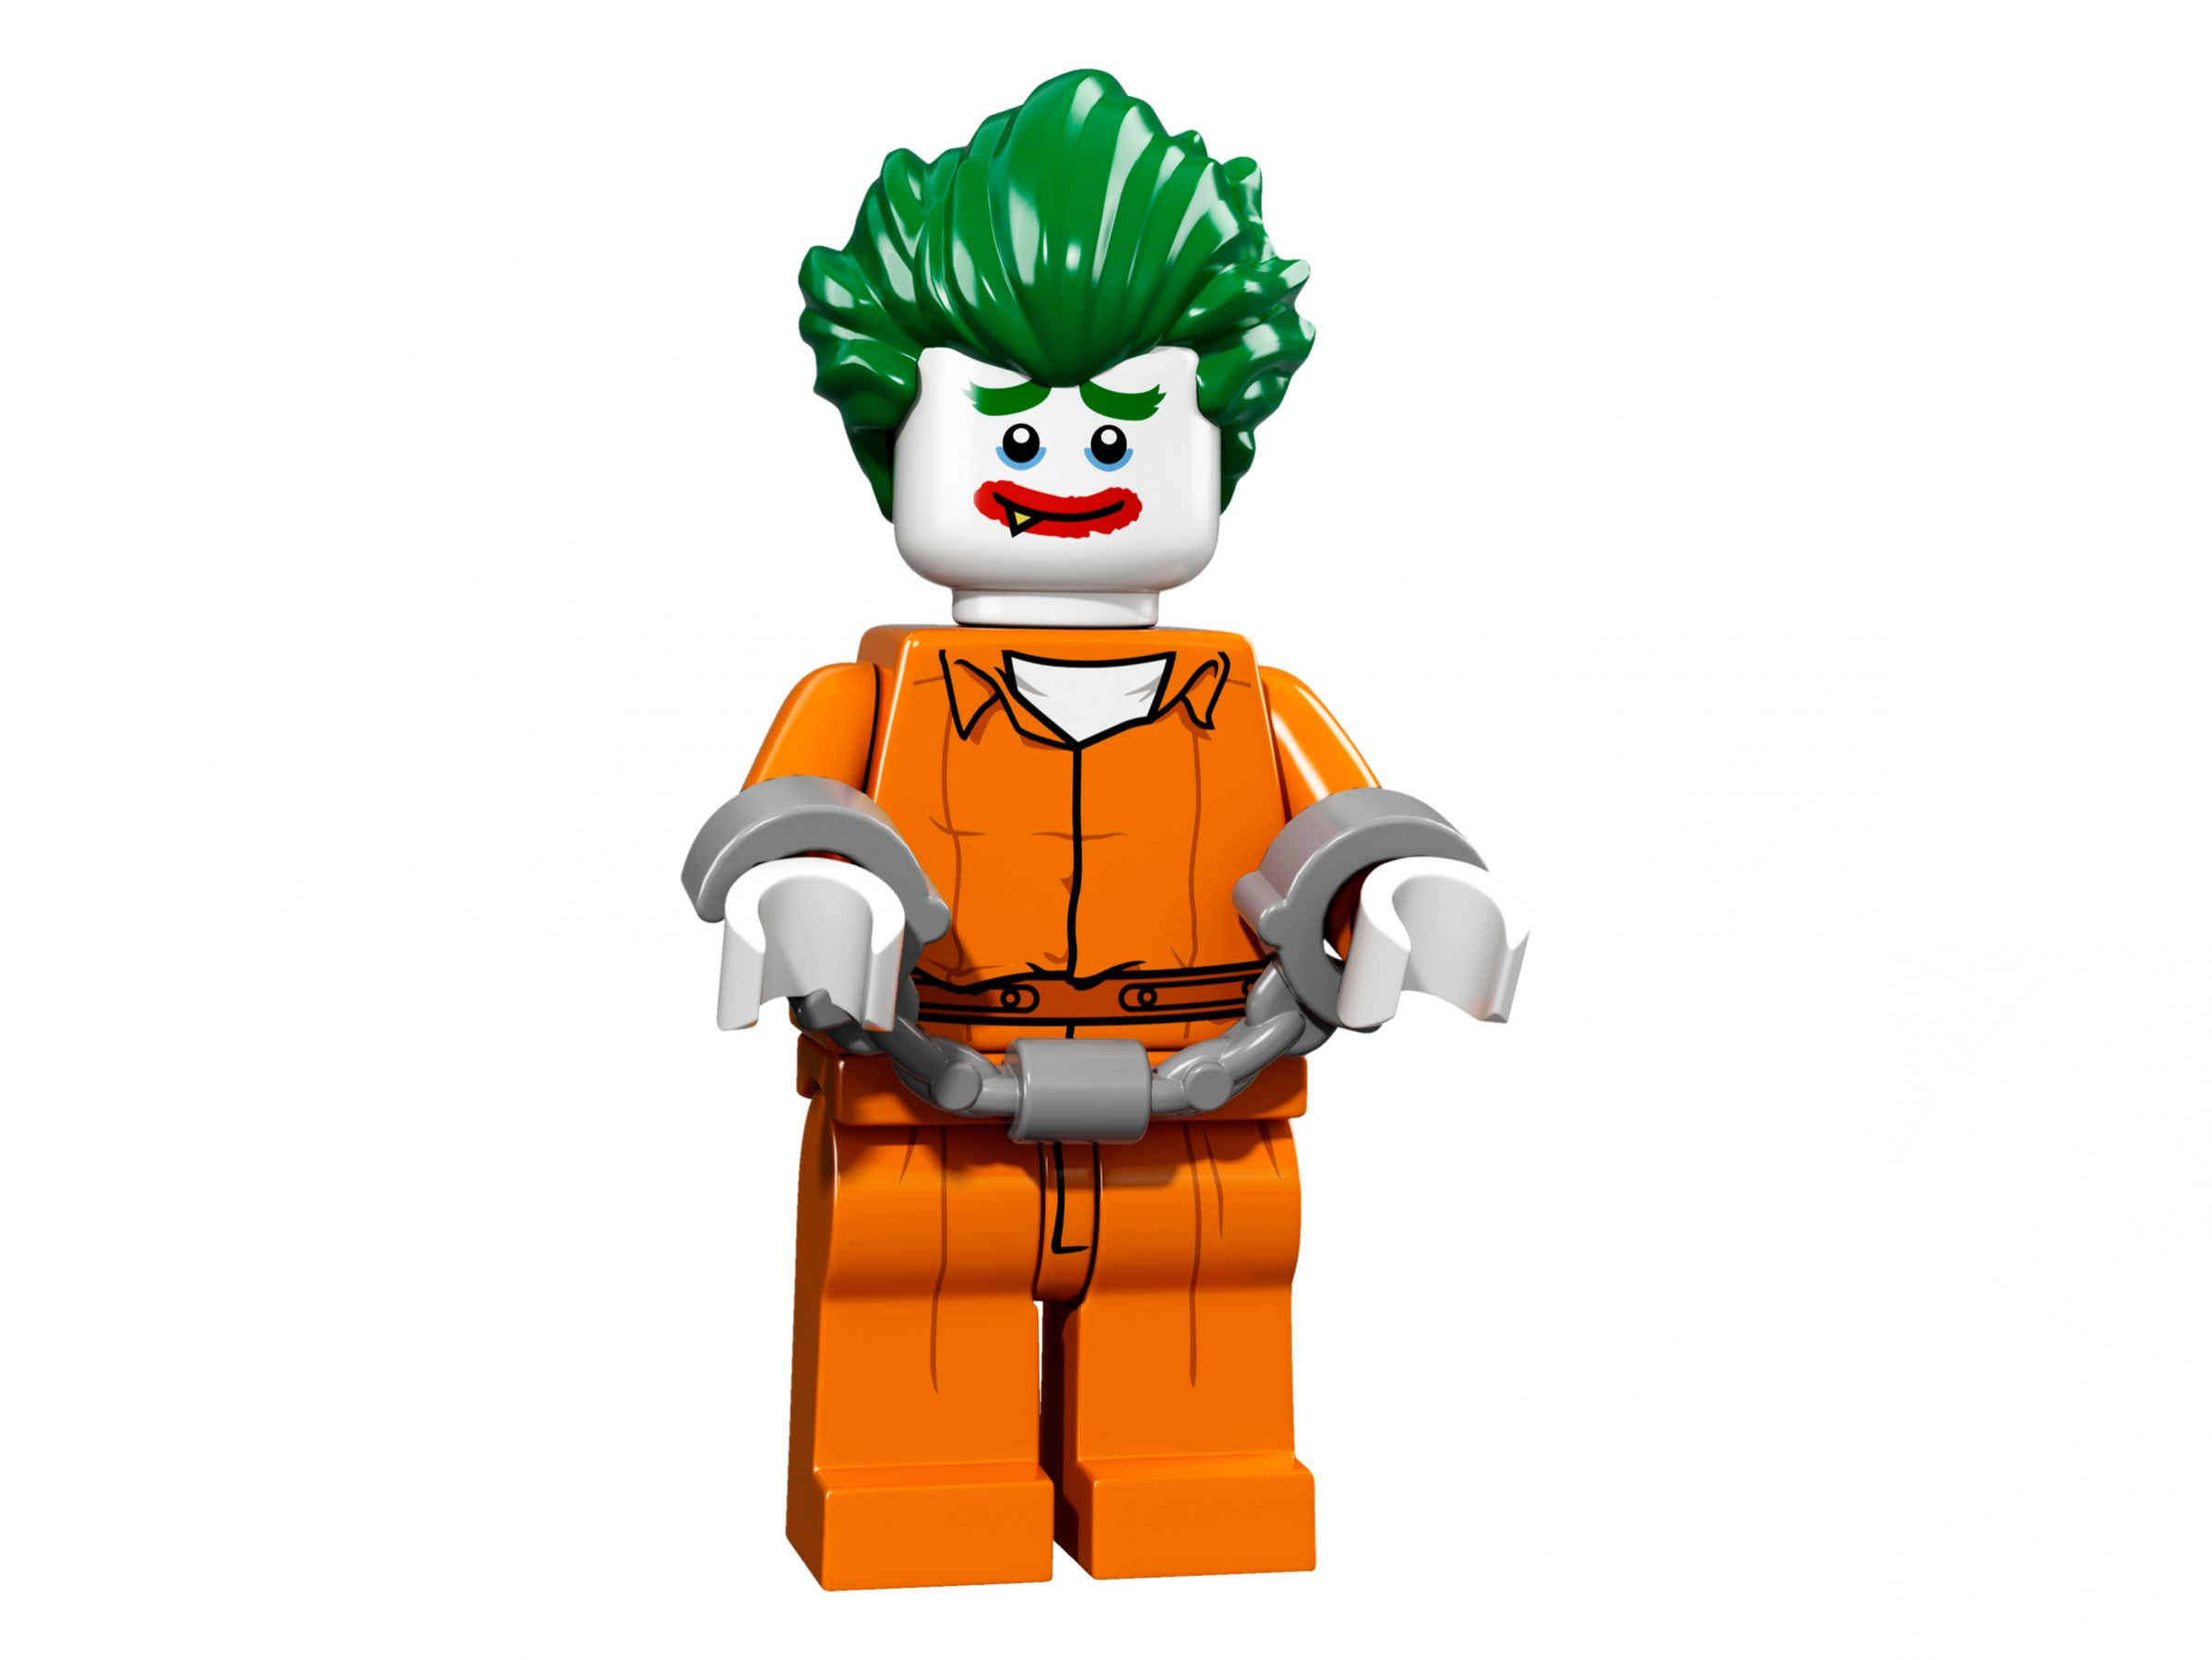 LEGO Collectable Minifigures 71017 LEGO® Batman Movie Minifiguren Serie LEGO_71017_alt4.jpg